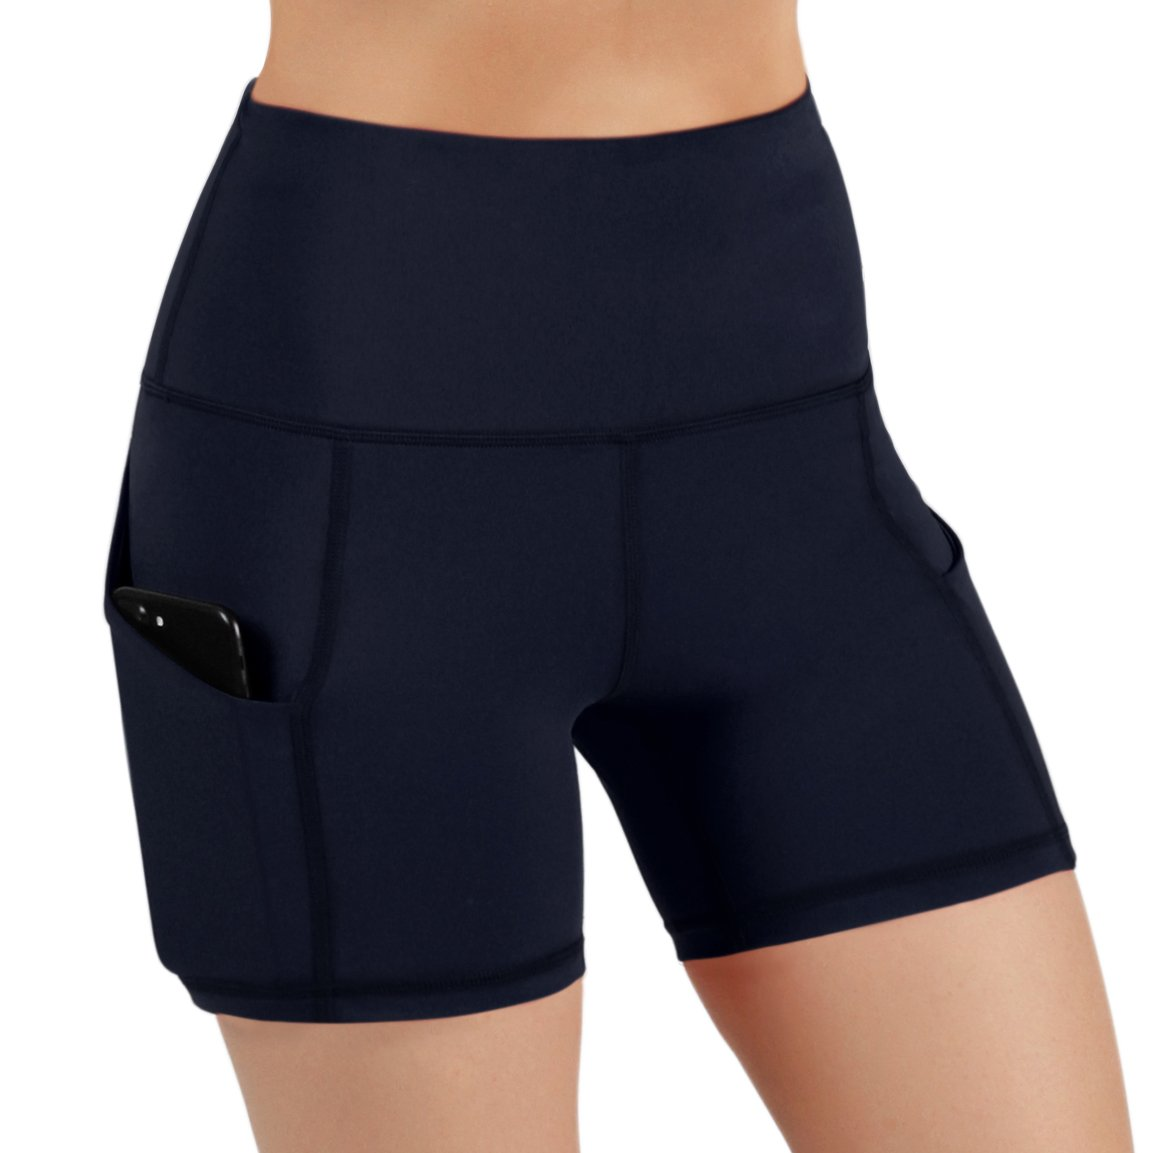 ODODOS High Waist Out Pocket Yoga Short Tummy Control Workout Running Athletic Non See-Through Yoga Shorts,Navy,X-Small